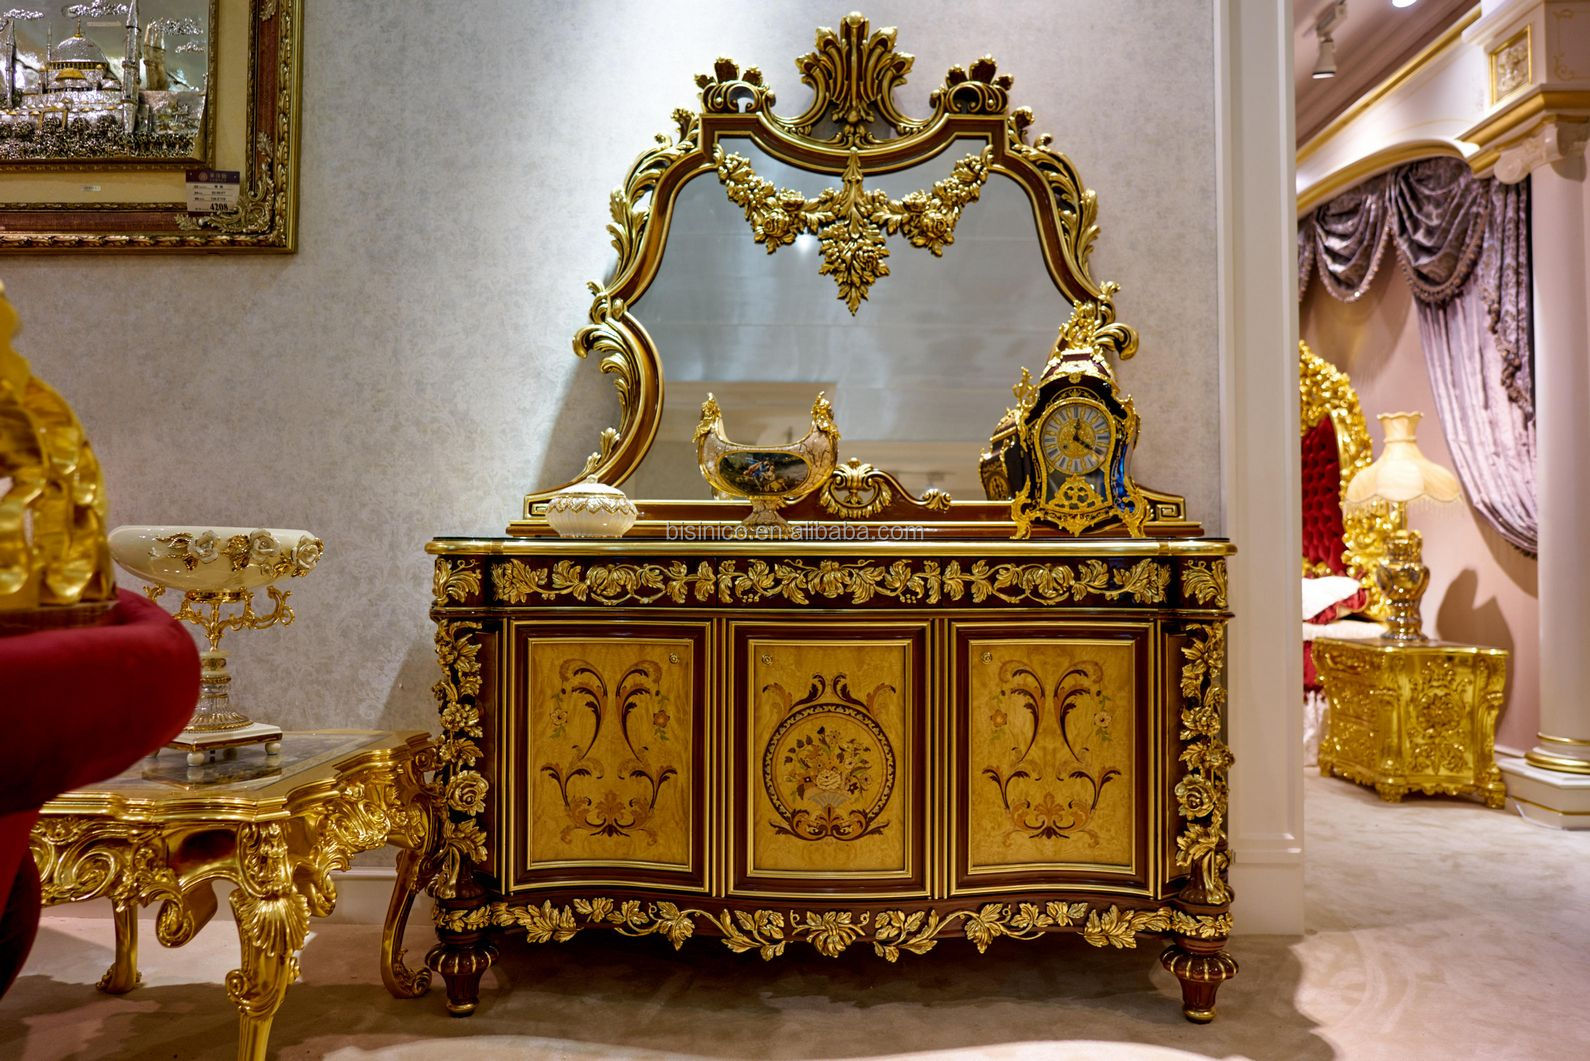 Antique Carved 24K Gold Bedroom Furniture, Luxury Palace Design Upholstered Furniture Set, European Style Royal Bedroom Set